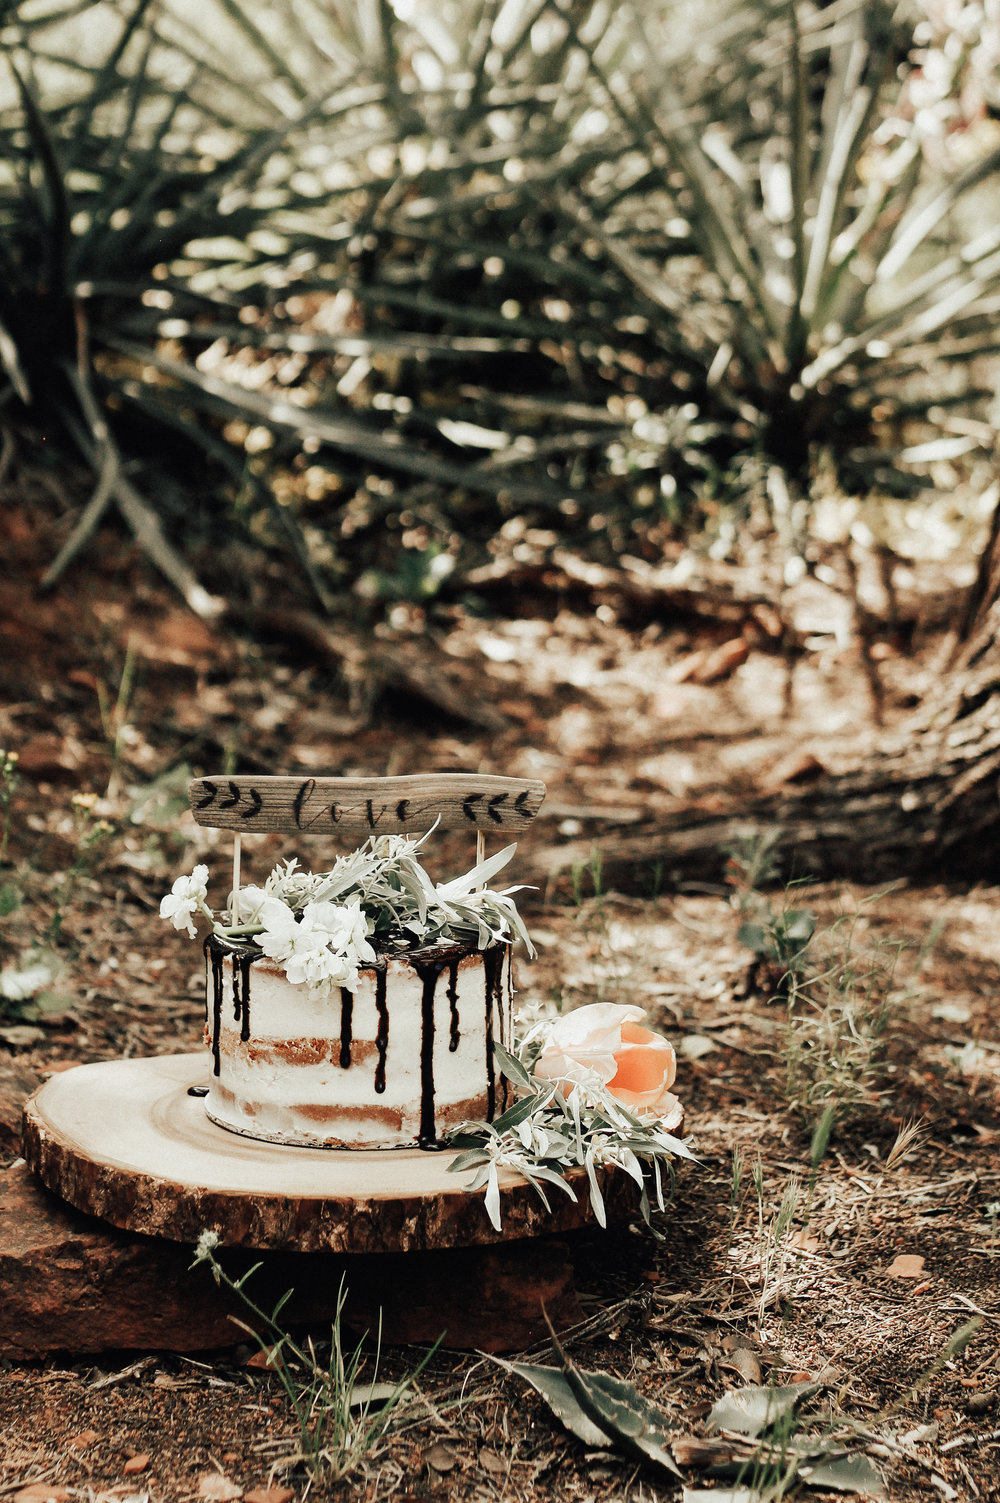 PHOTOGRAPHY/STYLING/CAKE: HEATHER ROCHA PHOTOGRAPHY FLOWERS FROM WHIPSTONE FARM, AZ LOCATION: SEDONA, AZ CAKE TOPPER: FIR + FOREST